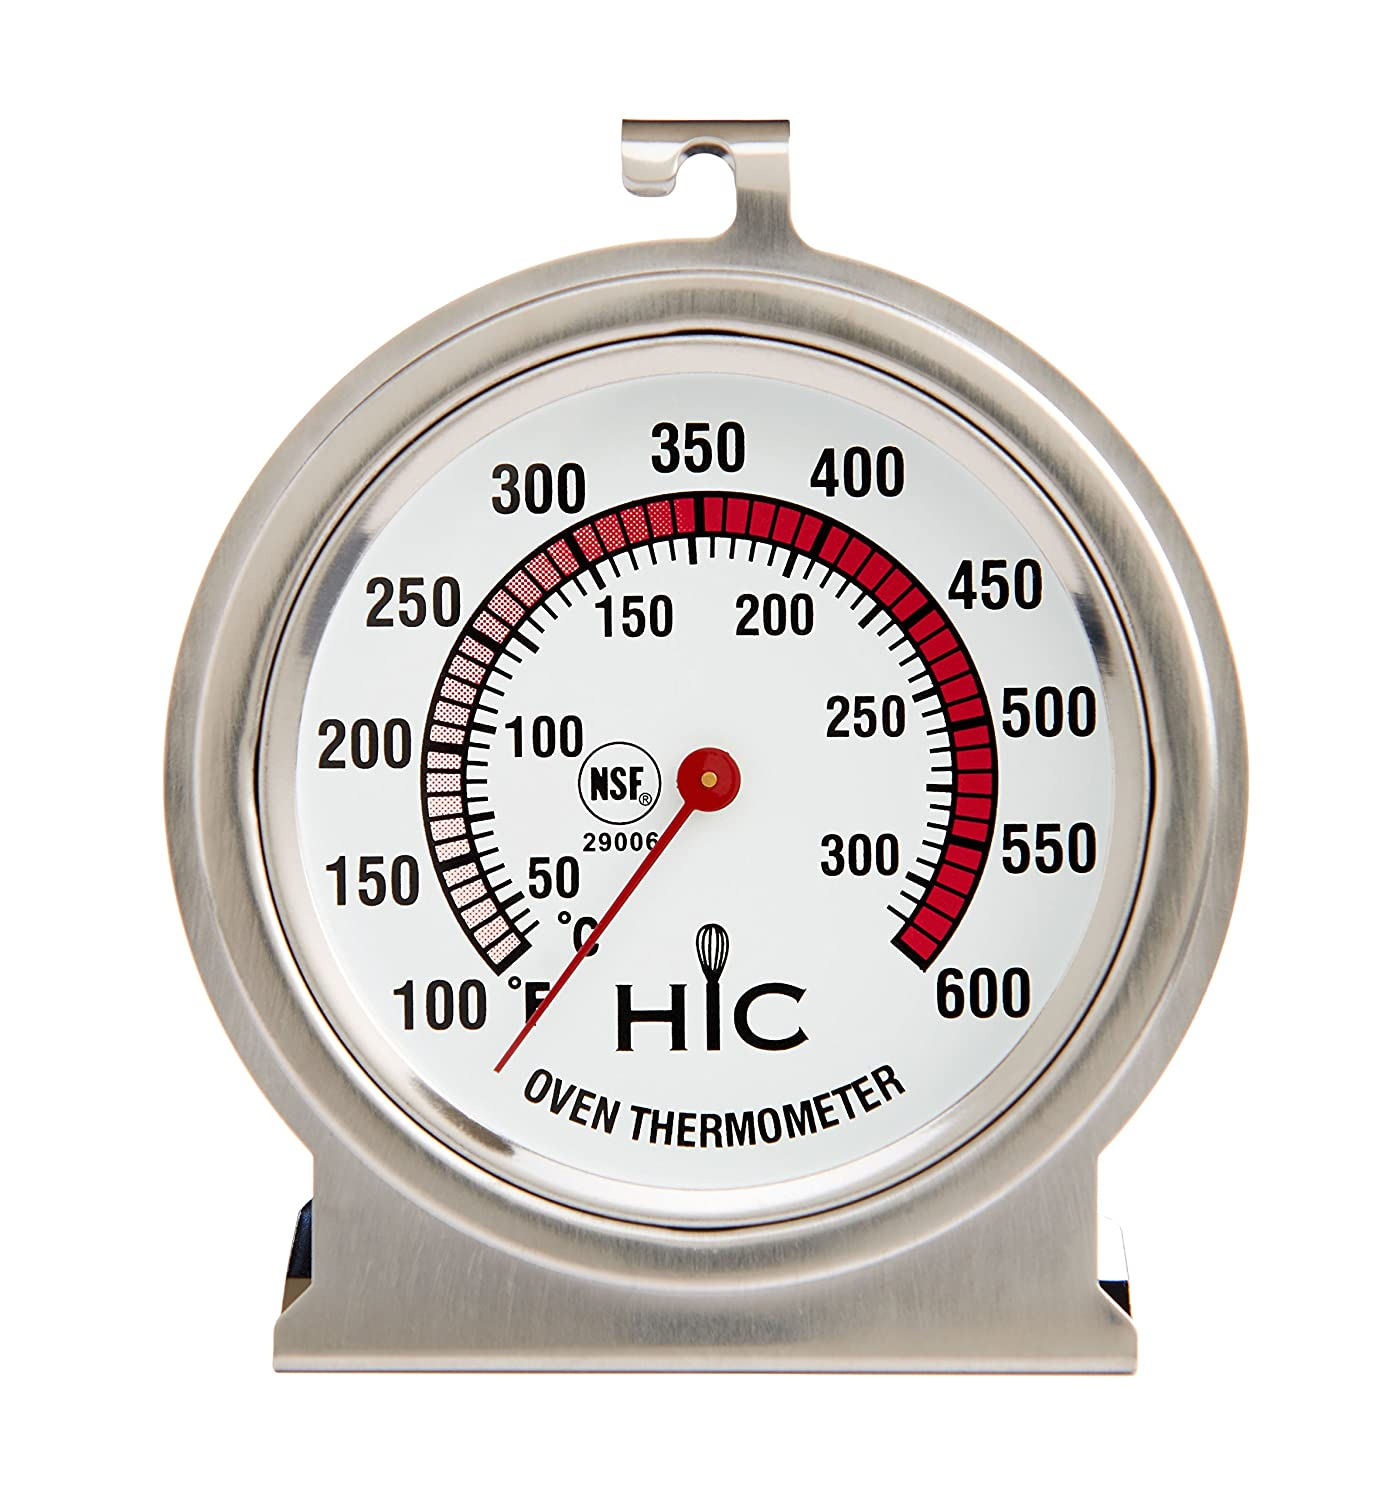 HIC Roasting Refrigerator Freezer Thermometer, Large 2.5-Inch Easy-Read Face with Safe Temperature Guide, Stainless Steel HIC Harold Import 29005